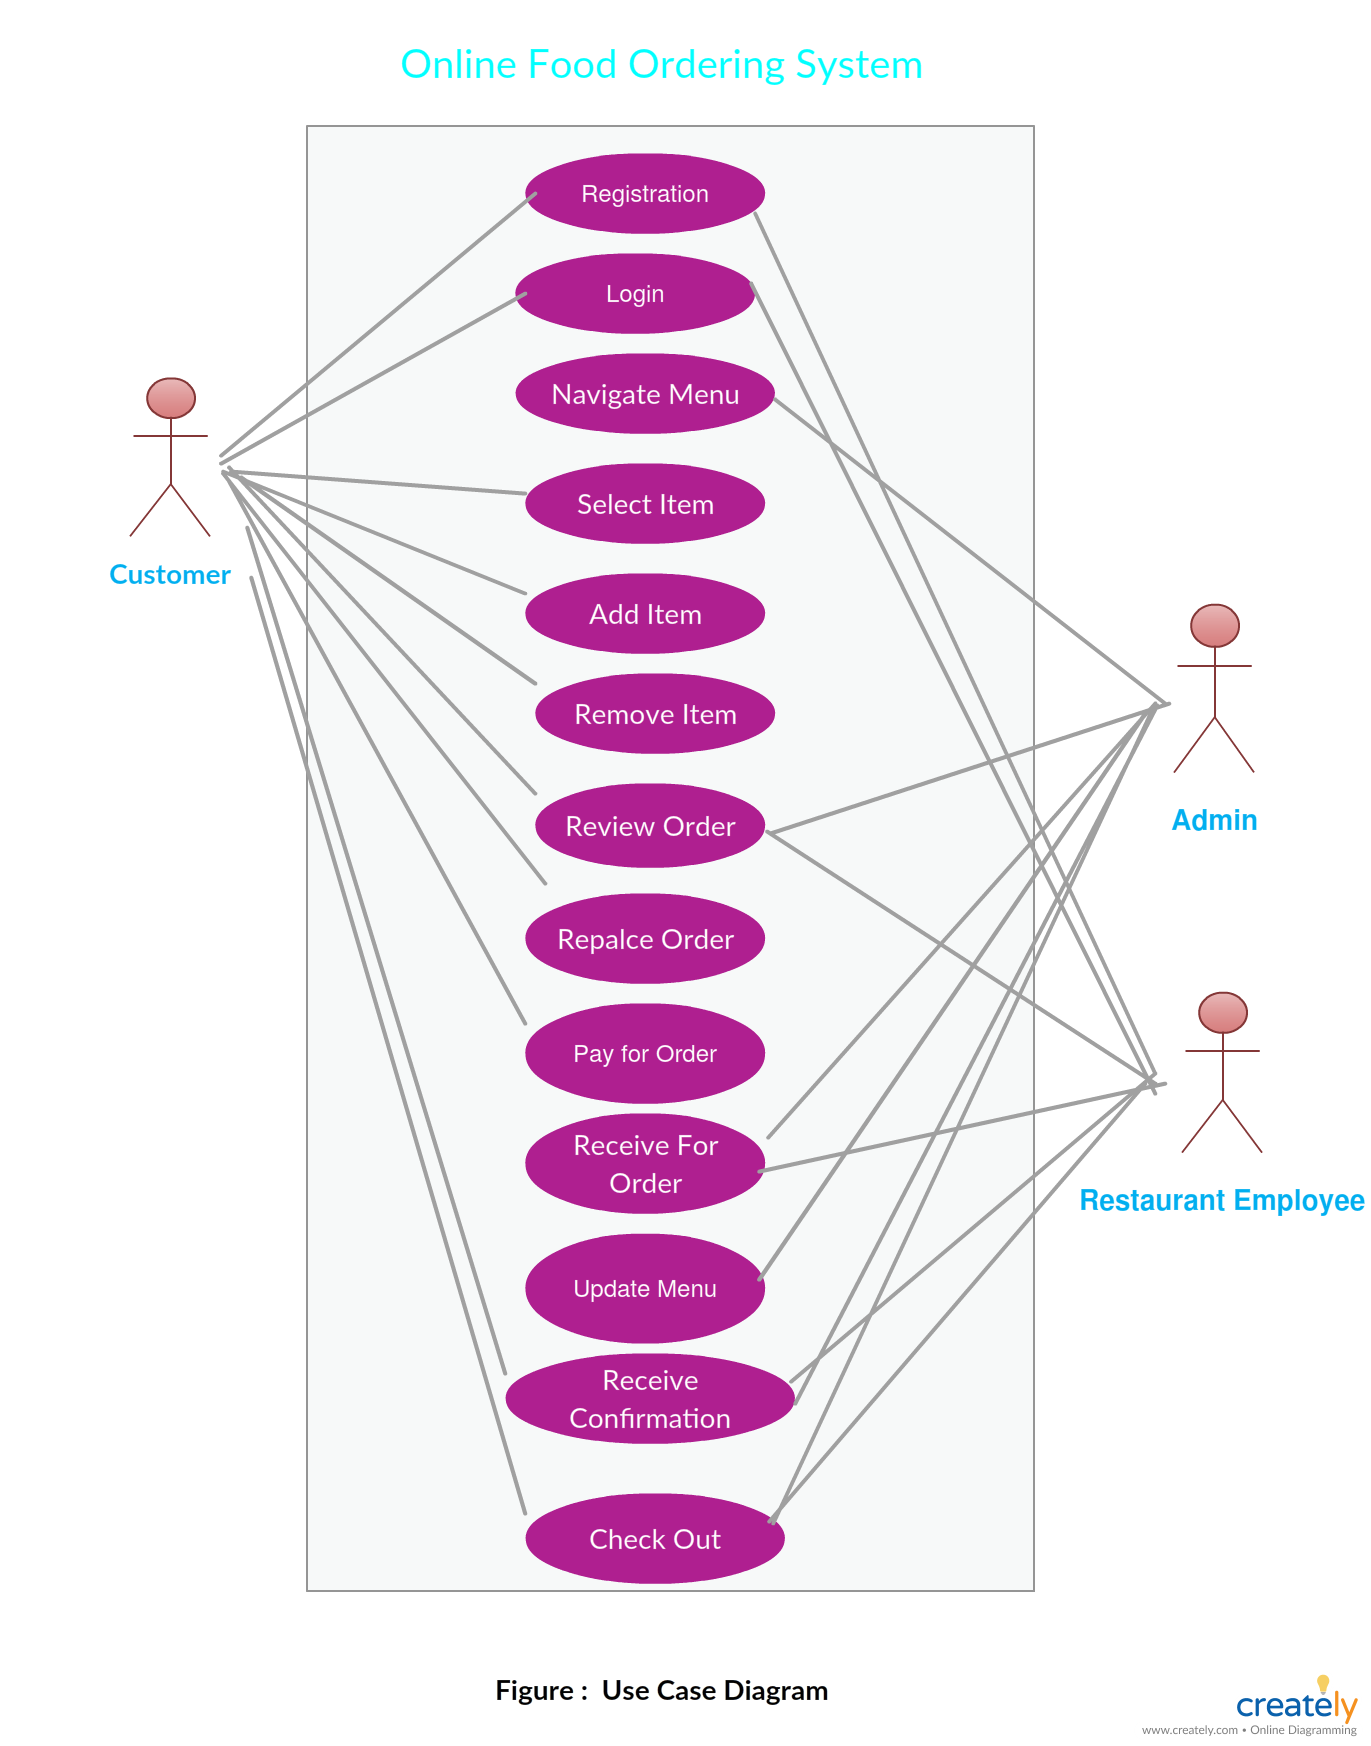 hight resolution of er diagram for online food ordering system a entity relationship diagram showing food ordering system ideal for restaurant chains who delivery food